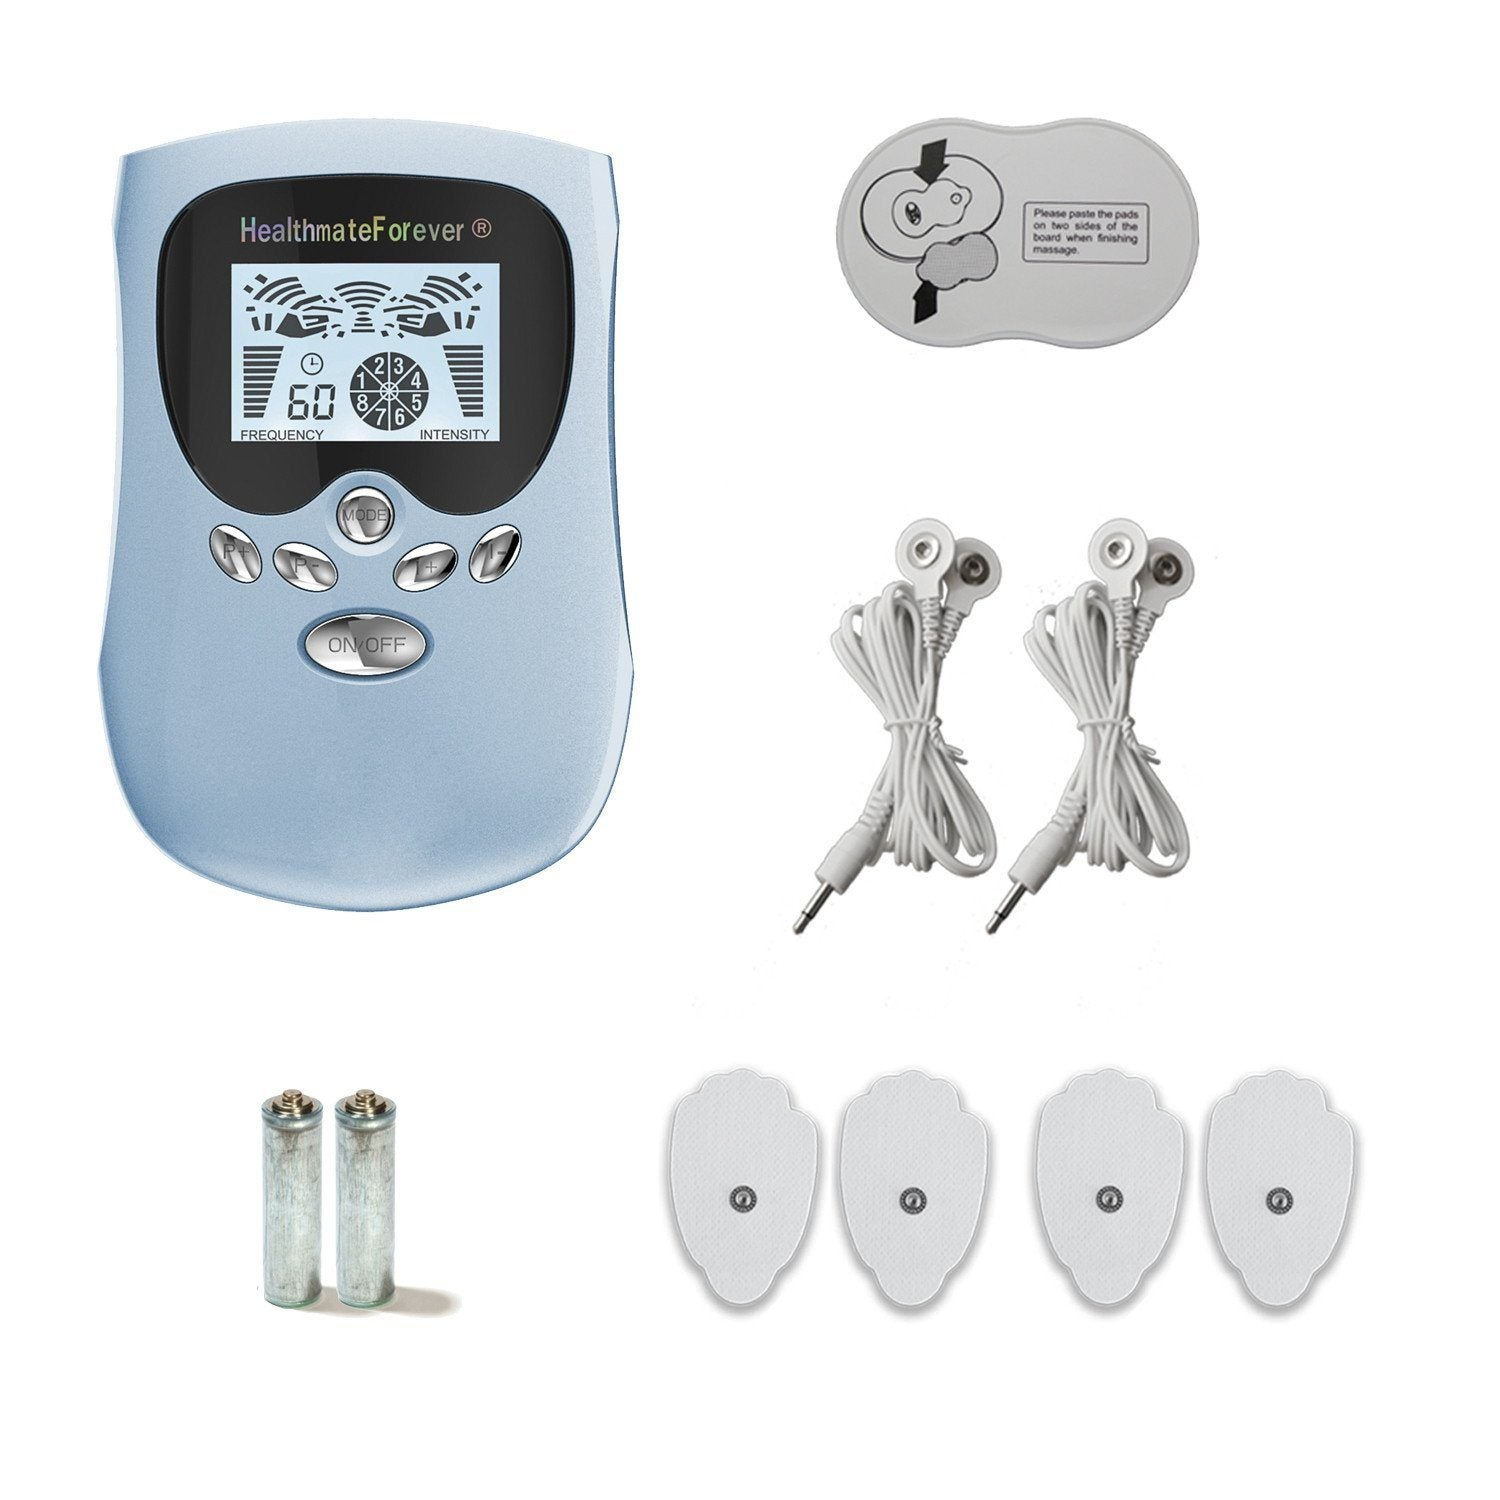 CLEARANCE PM8IS 1ST EDITION HealthmateForever TENS Unit & Muscle Stimulator